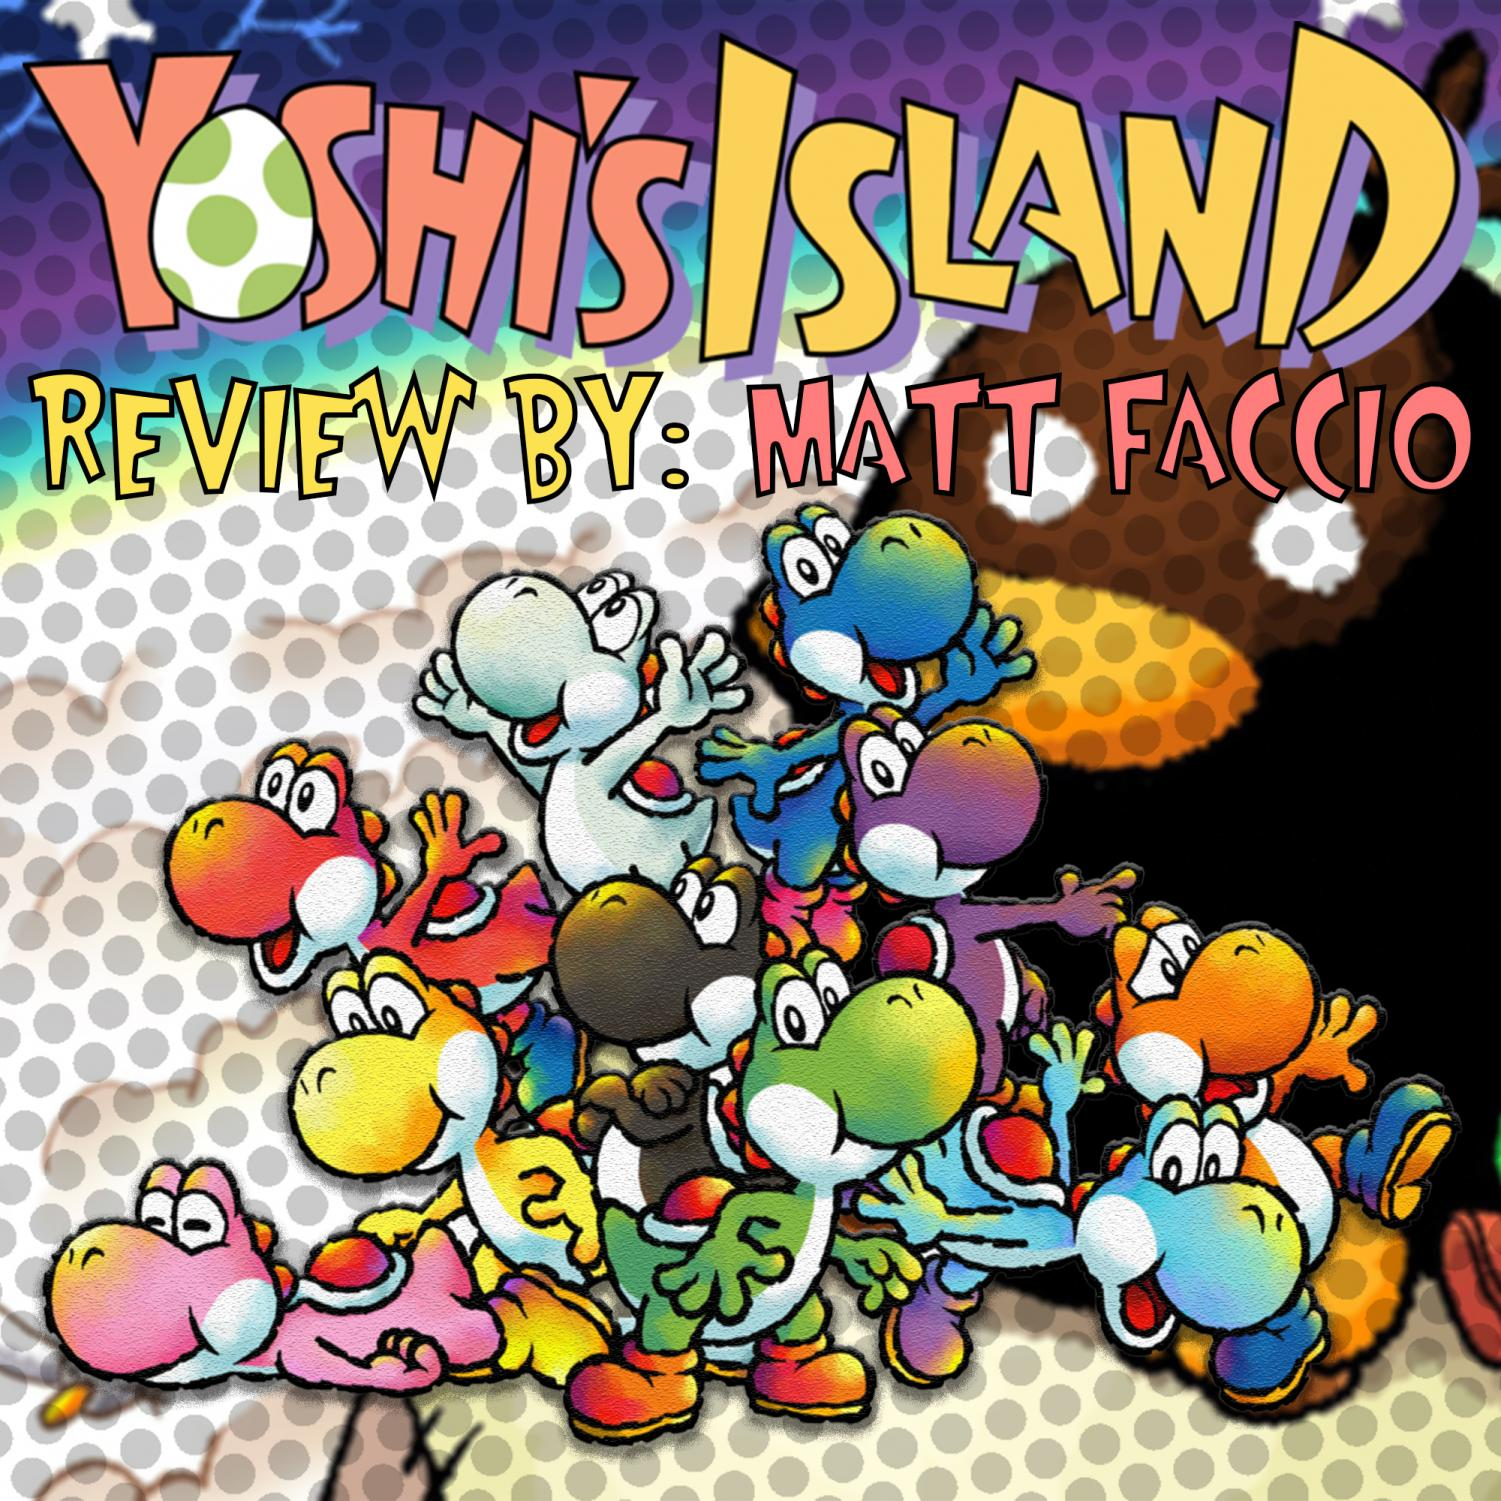 Yoshi's Island is the game that generation Z grew up playing.